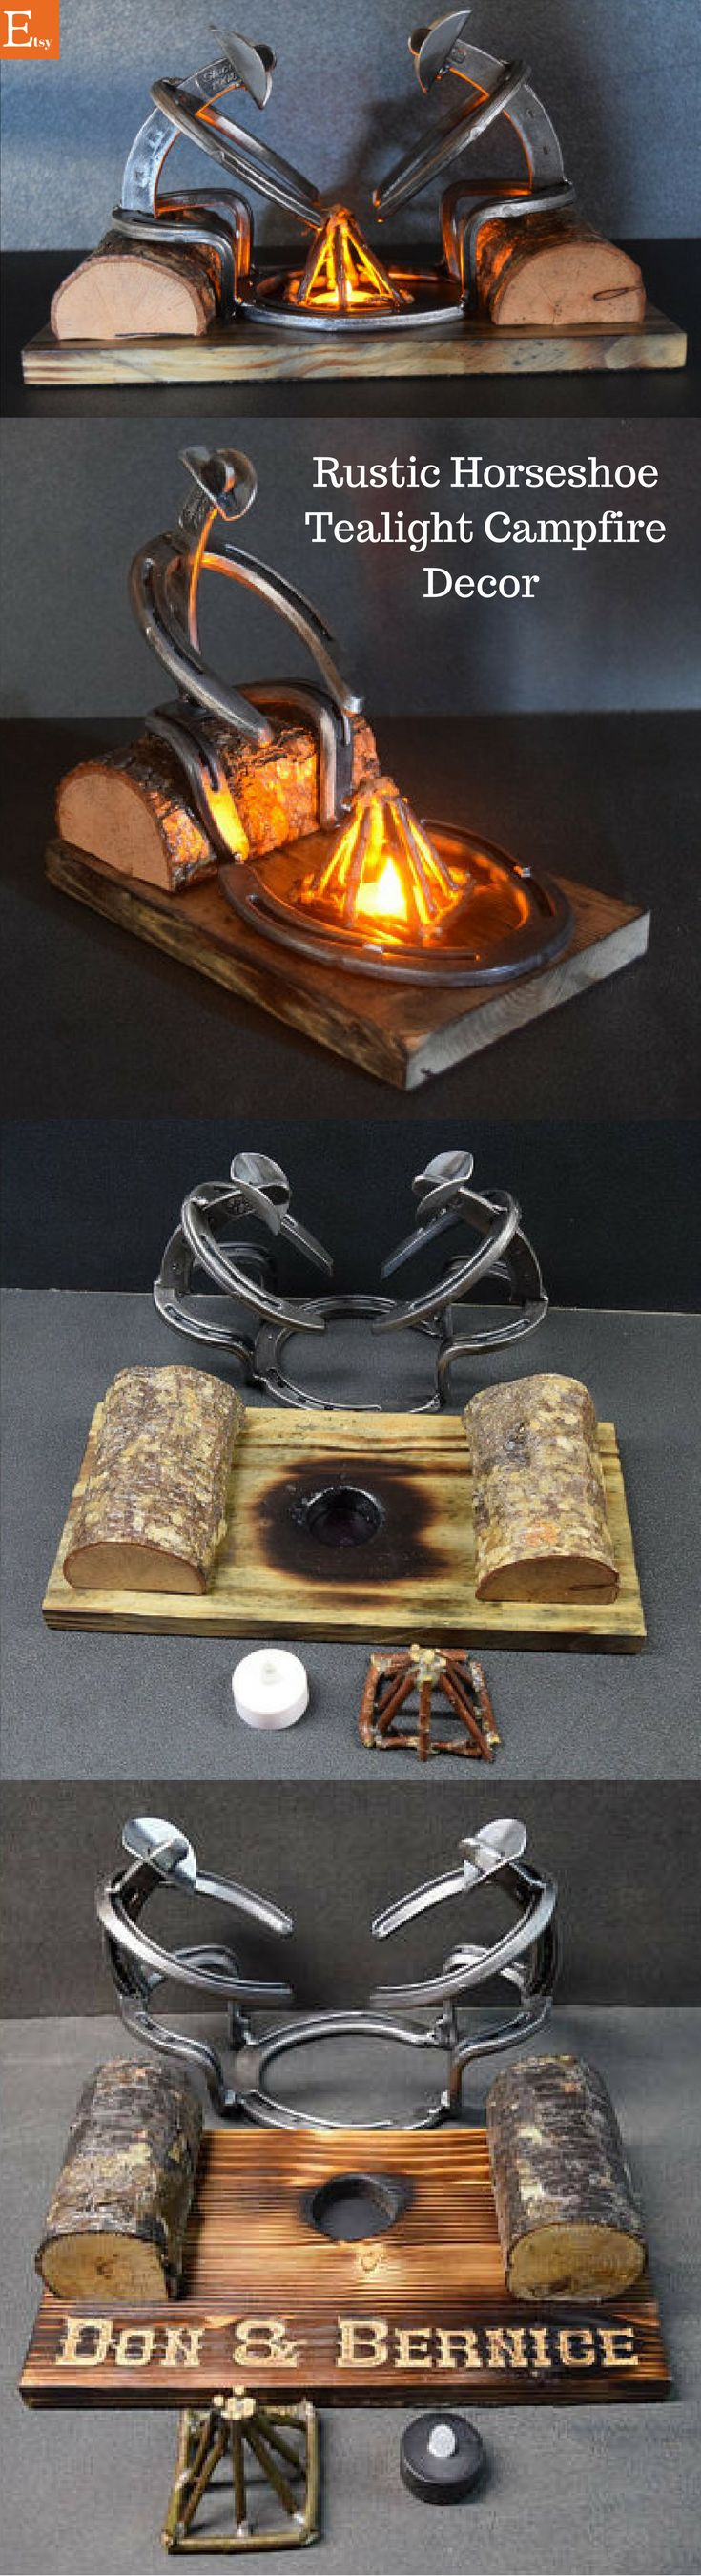 The Horseshoe feel and the tealight campfire feel would be a perfect addition to my rustic decor! #Horseshoecraftsideas